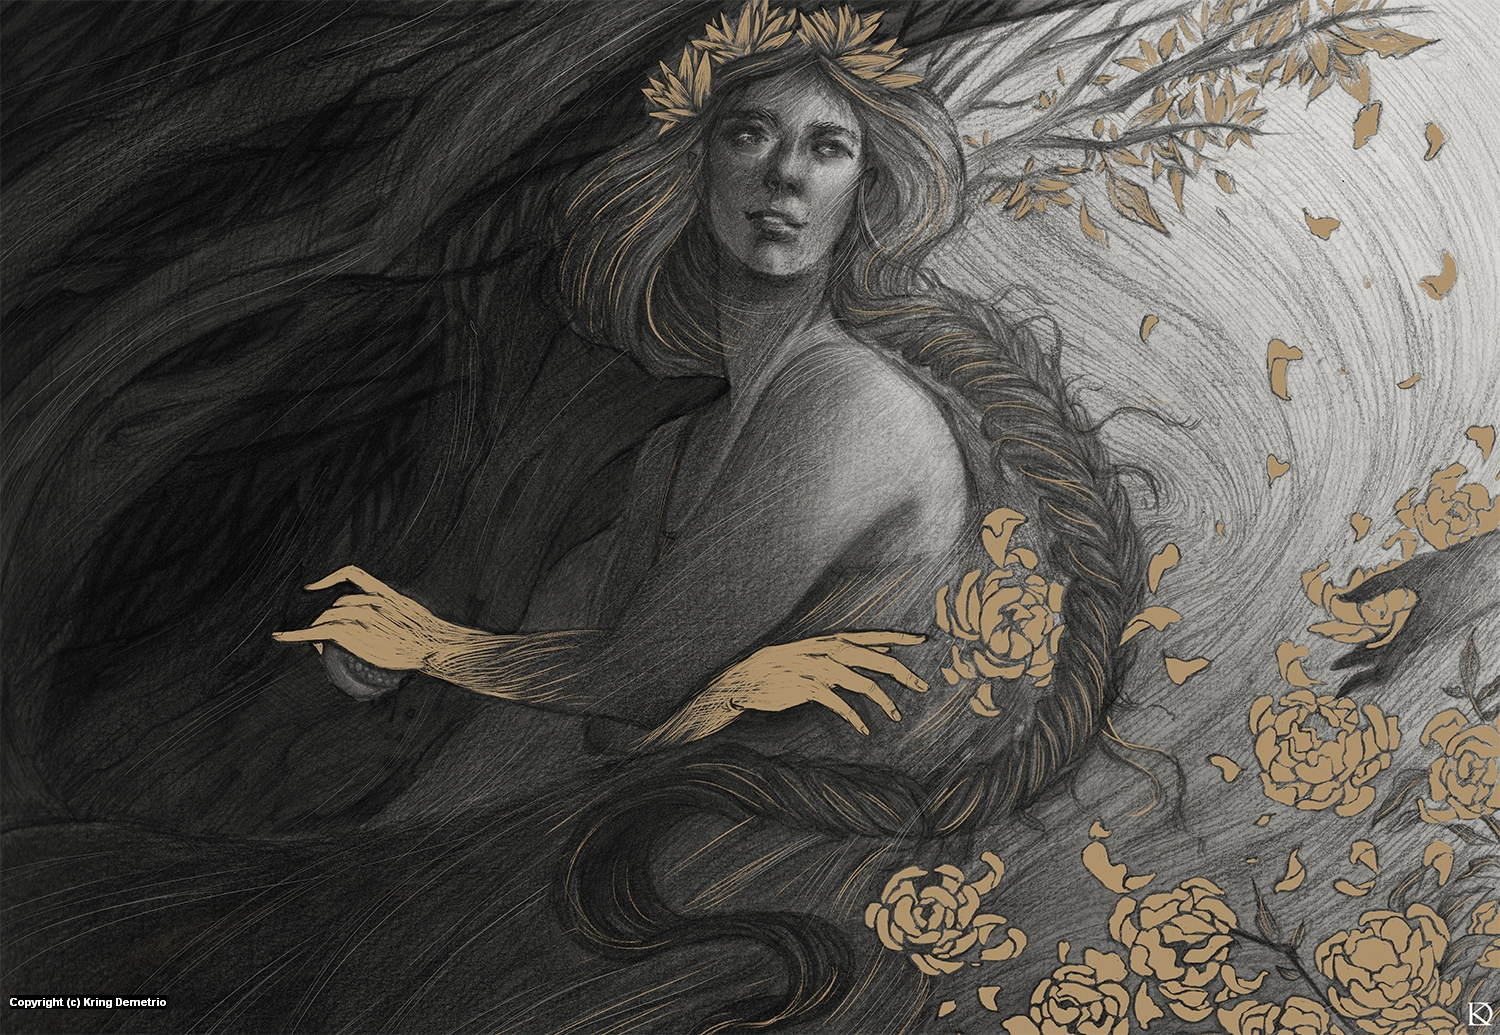 Persephone Artwork by Kring Demetrio